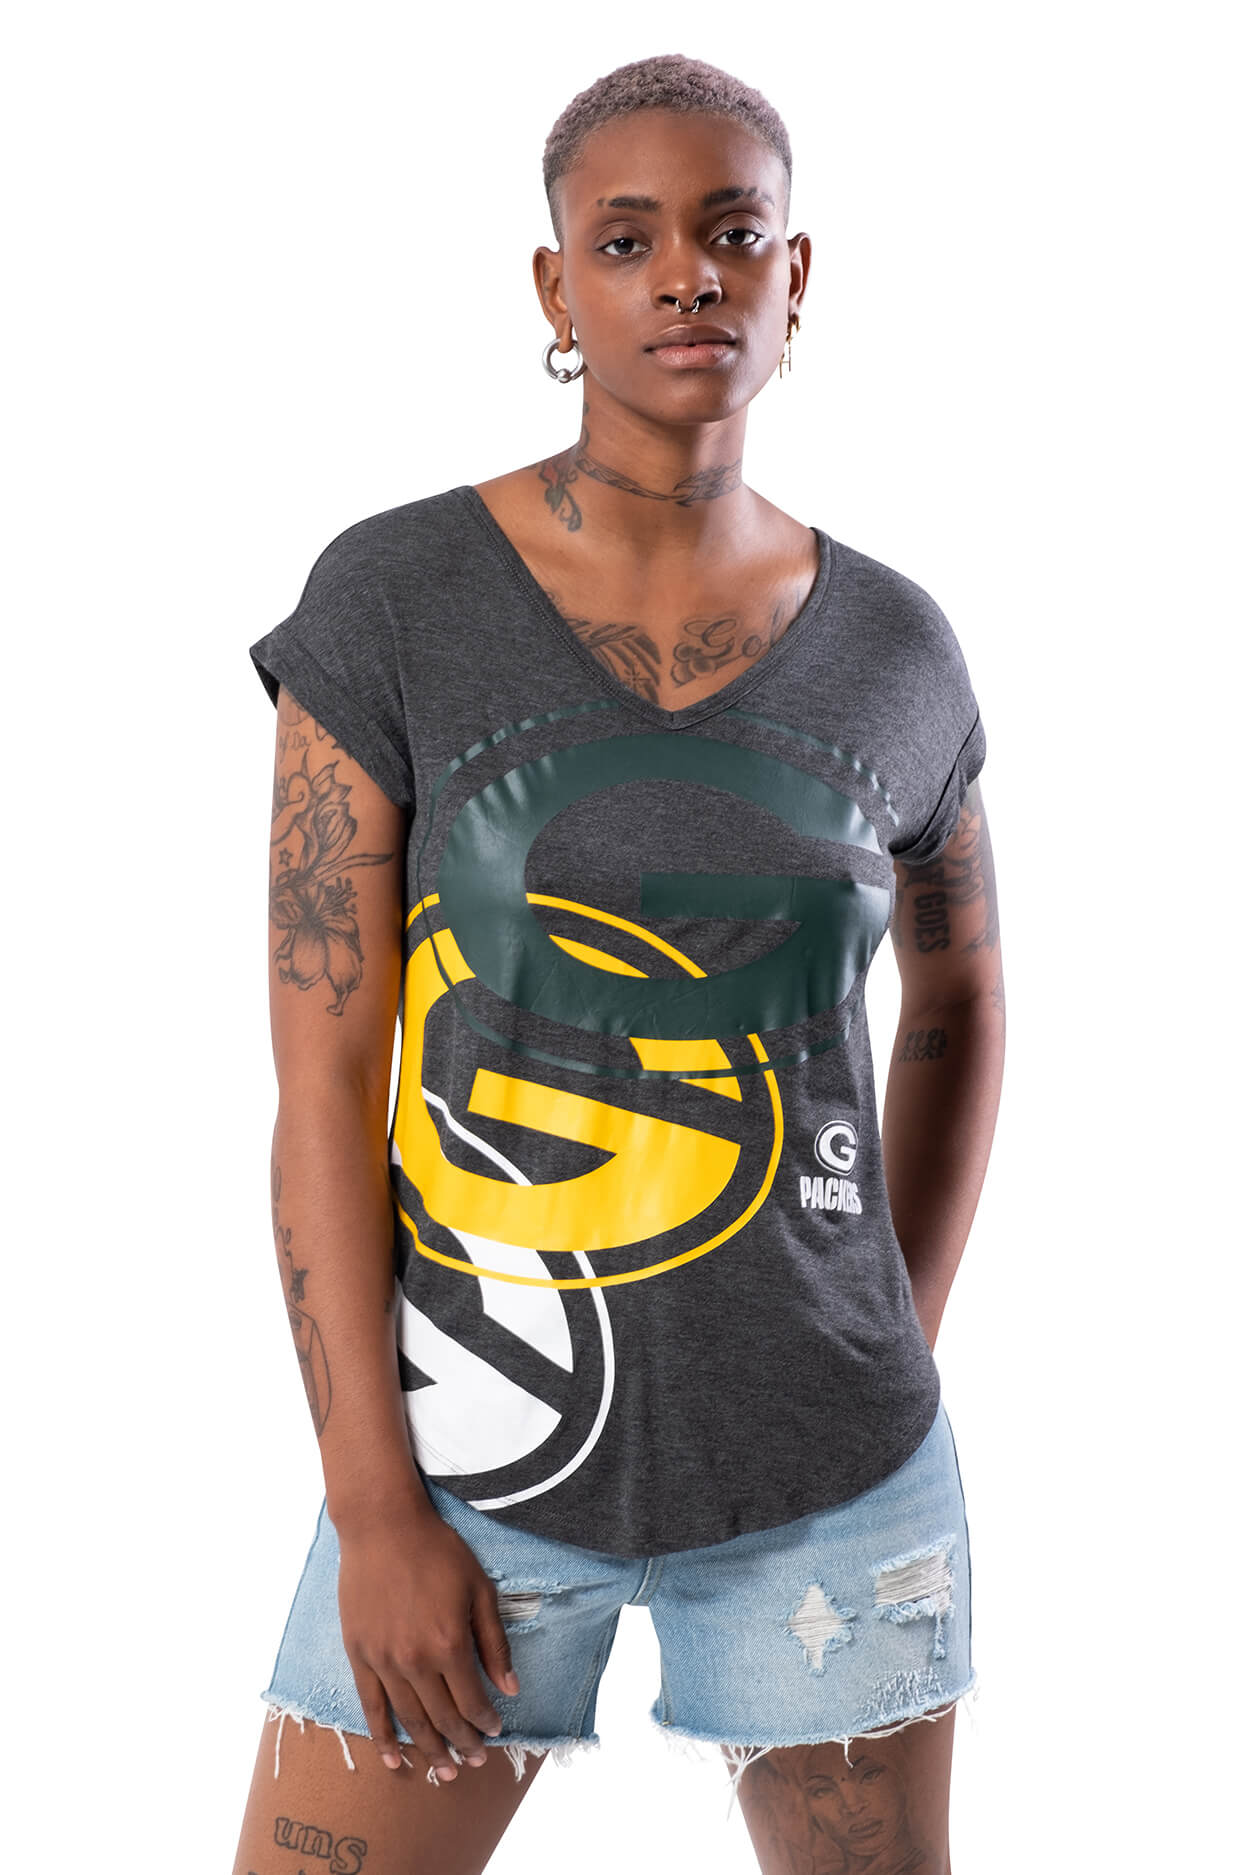 NFL Green Bay Packers Women's V-Neck Tee|Green Bay Packers